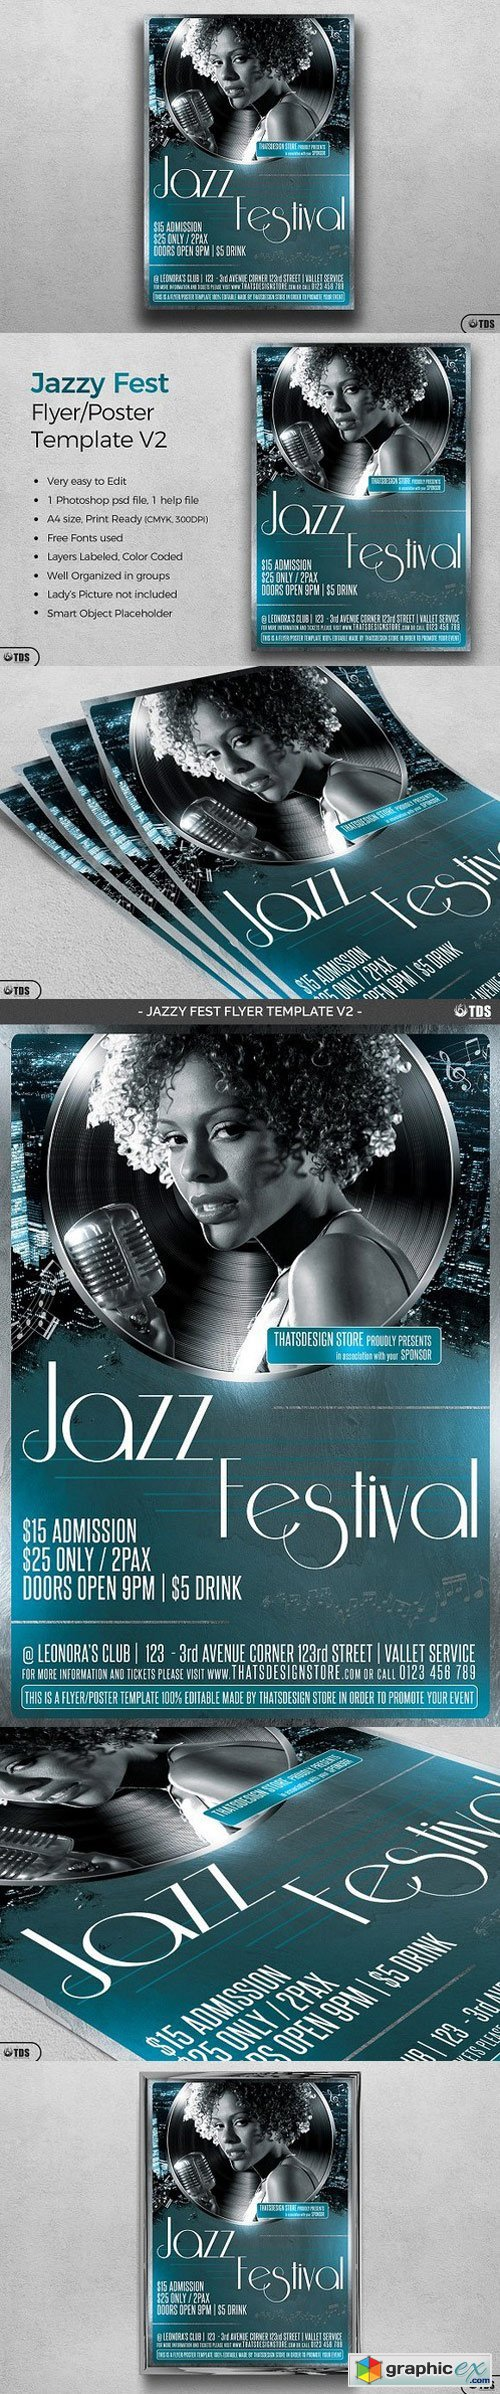 Jazzy Fest Flyer Template V2 1529356